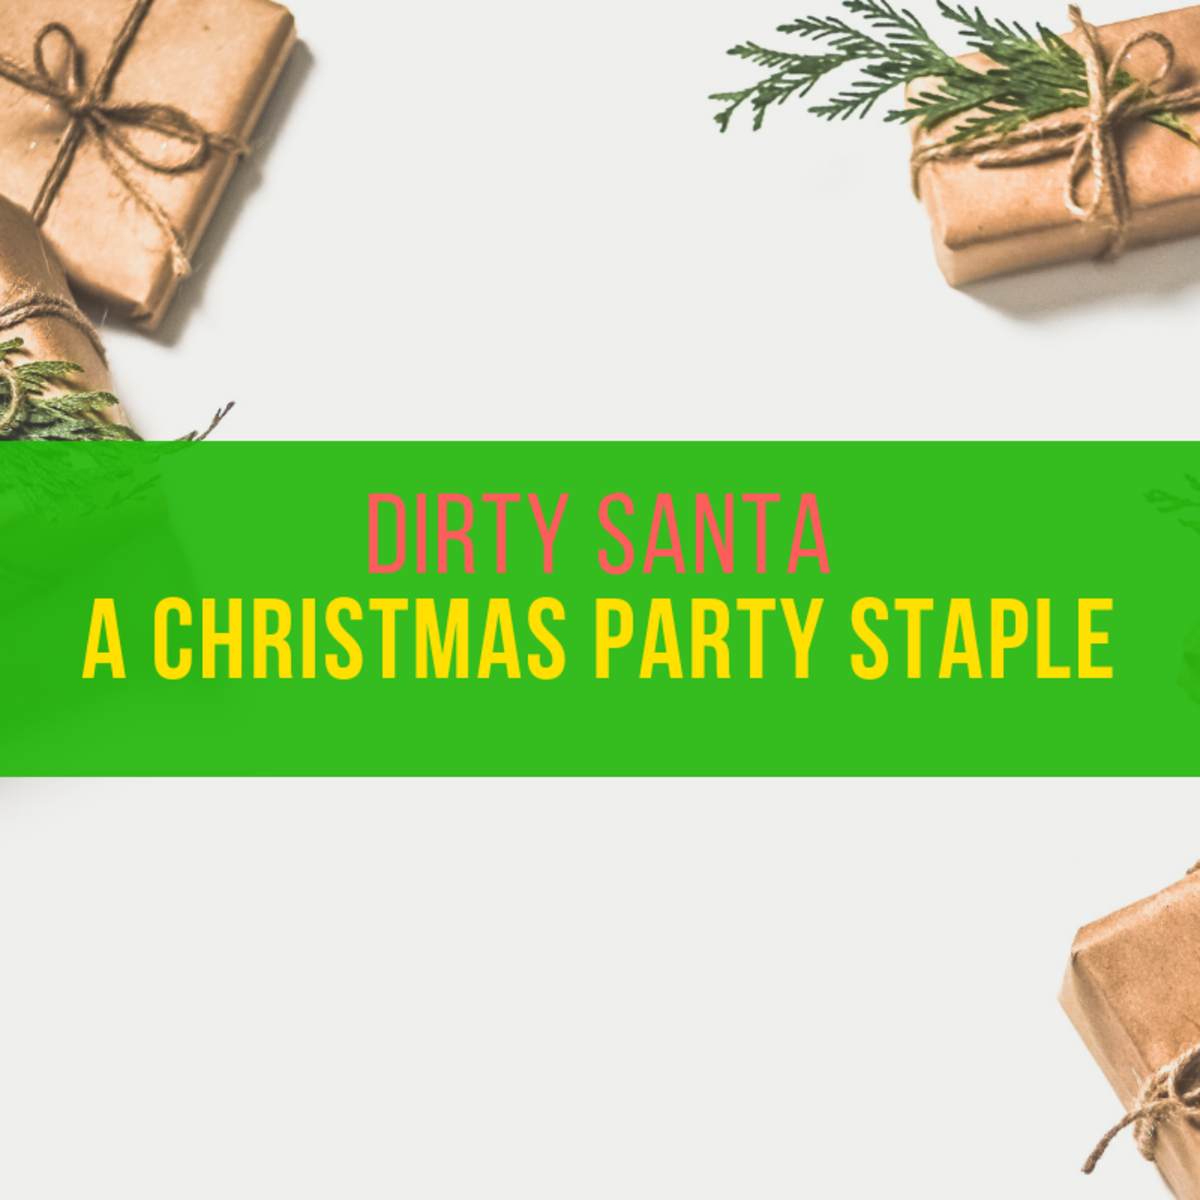 How to Play Dirty Santa: Rules, Variations, and Gift Ideas